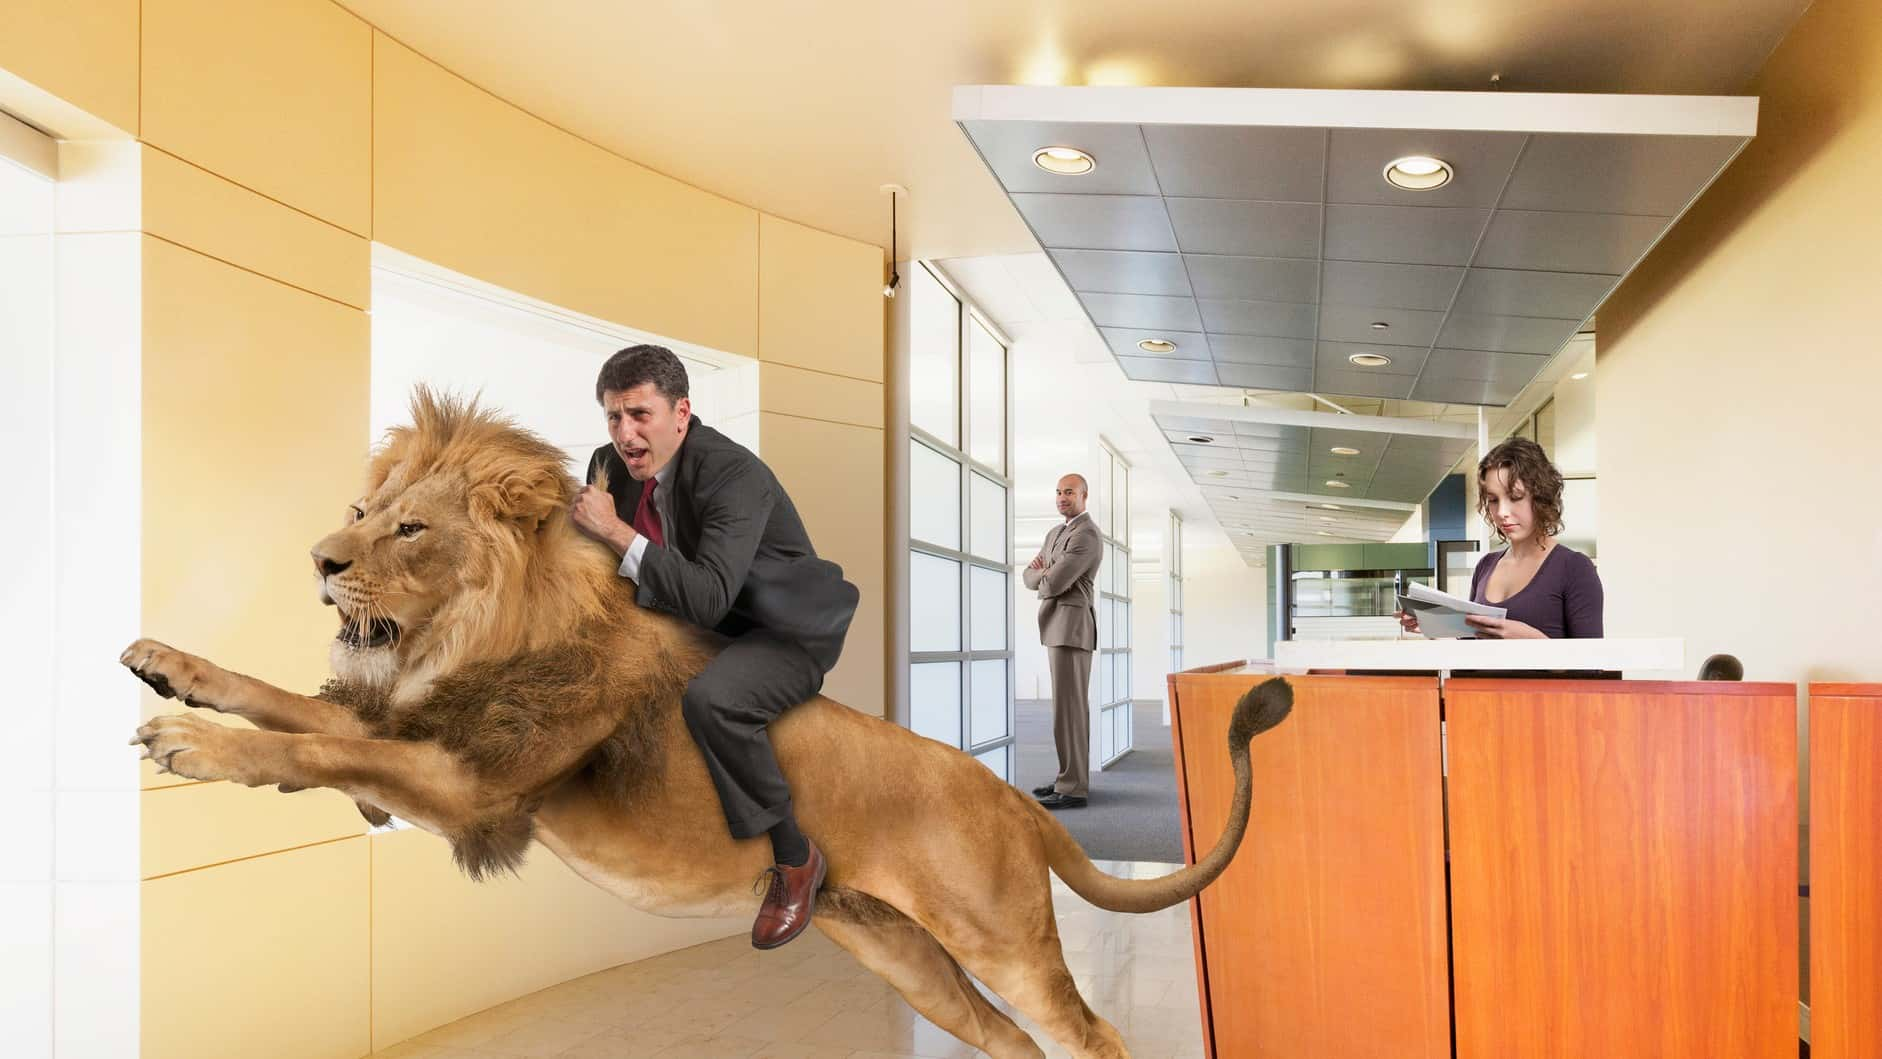 ASX share price rise represented by investor riding atop leaping lion